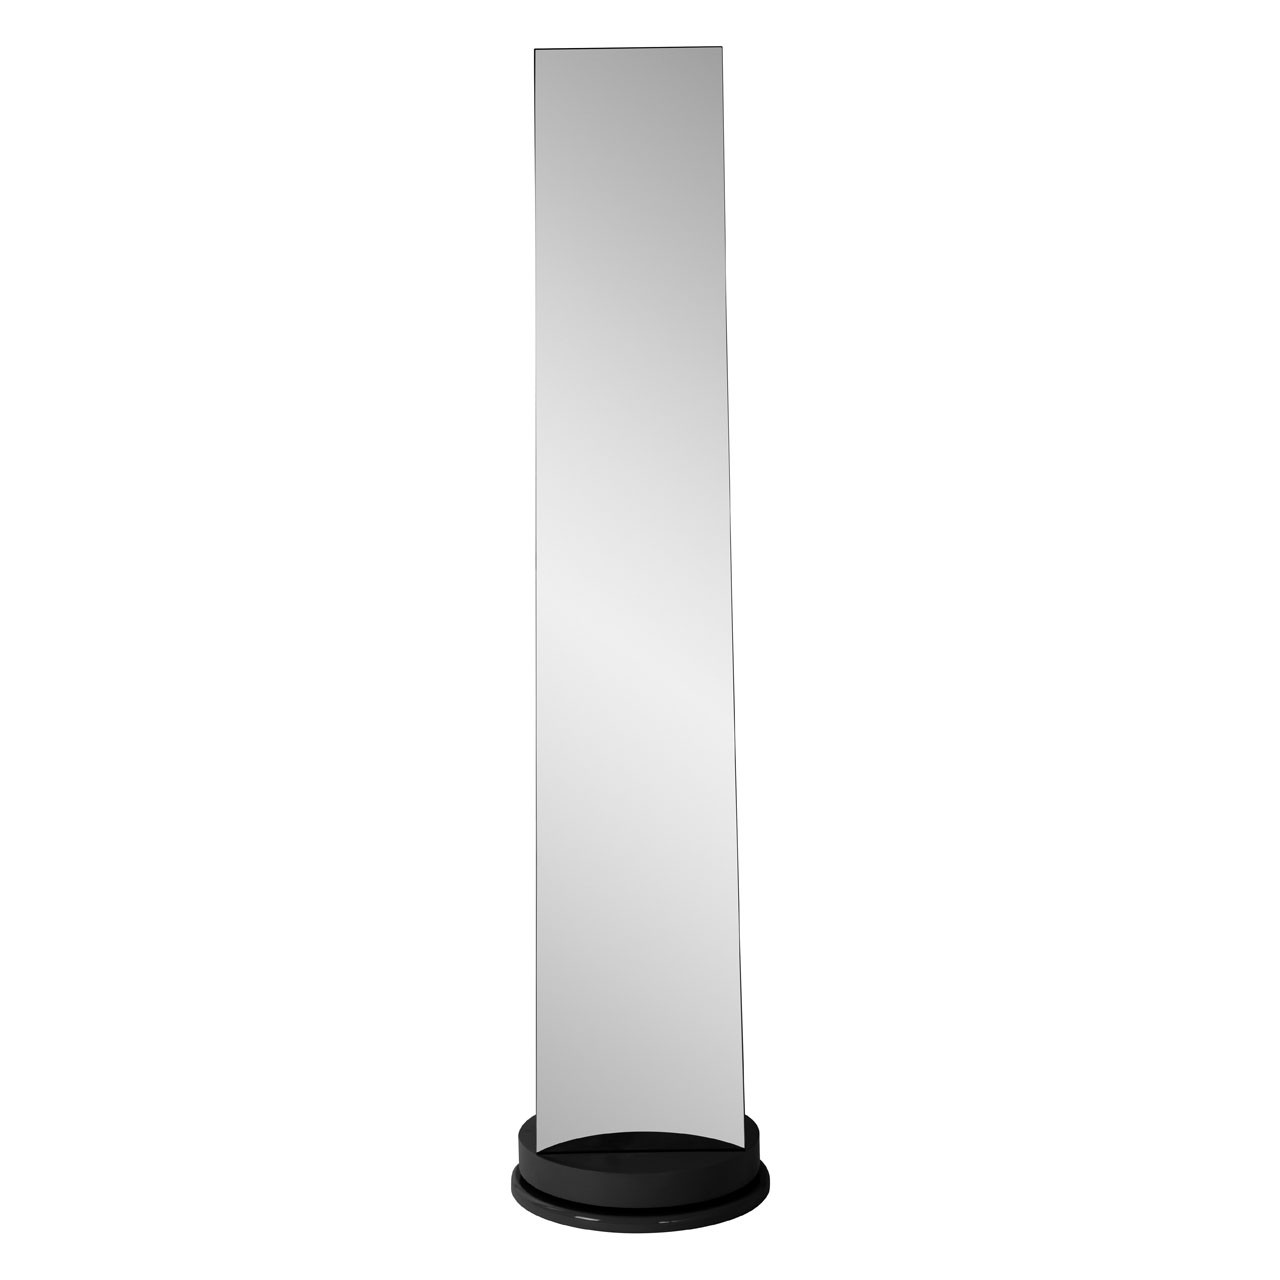 Prime Furnishing Floor Standing Revolving Mirror - Black